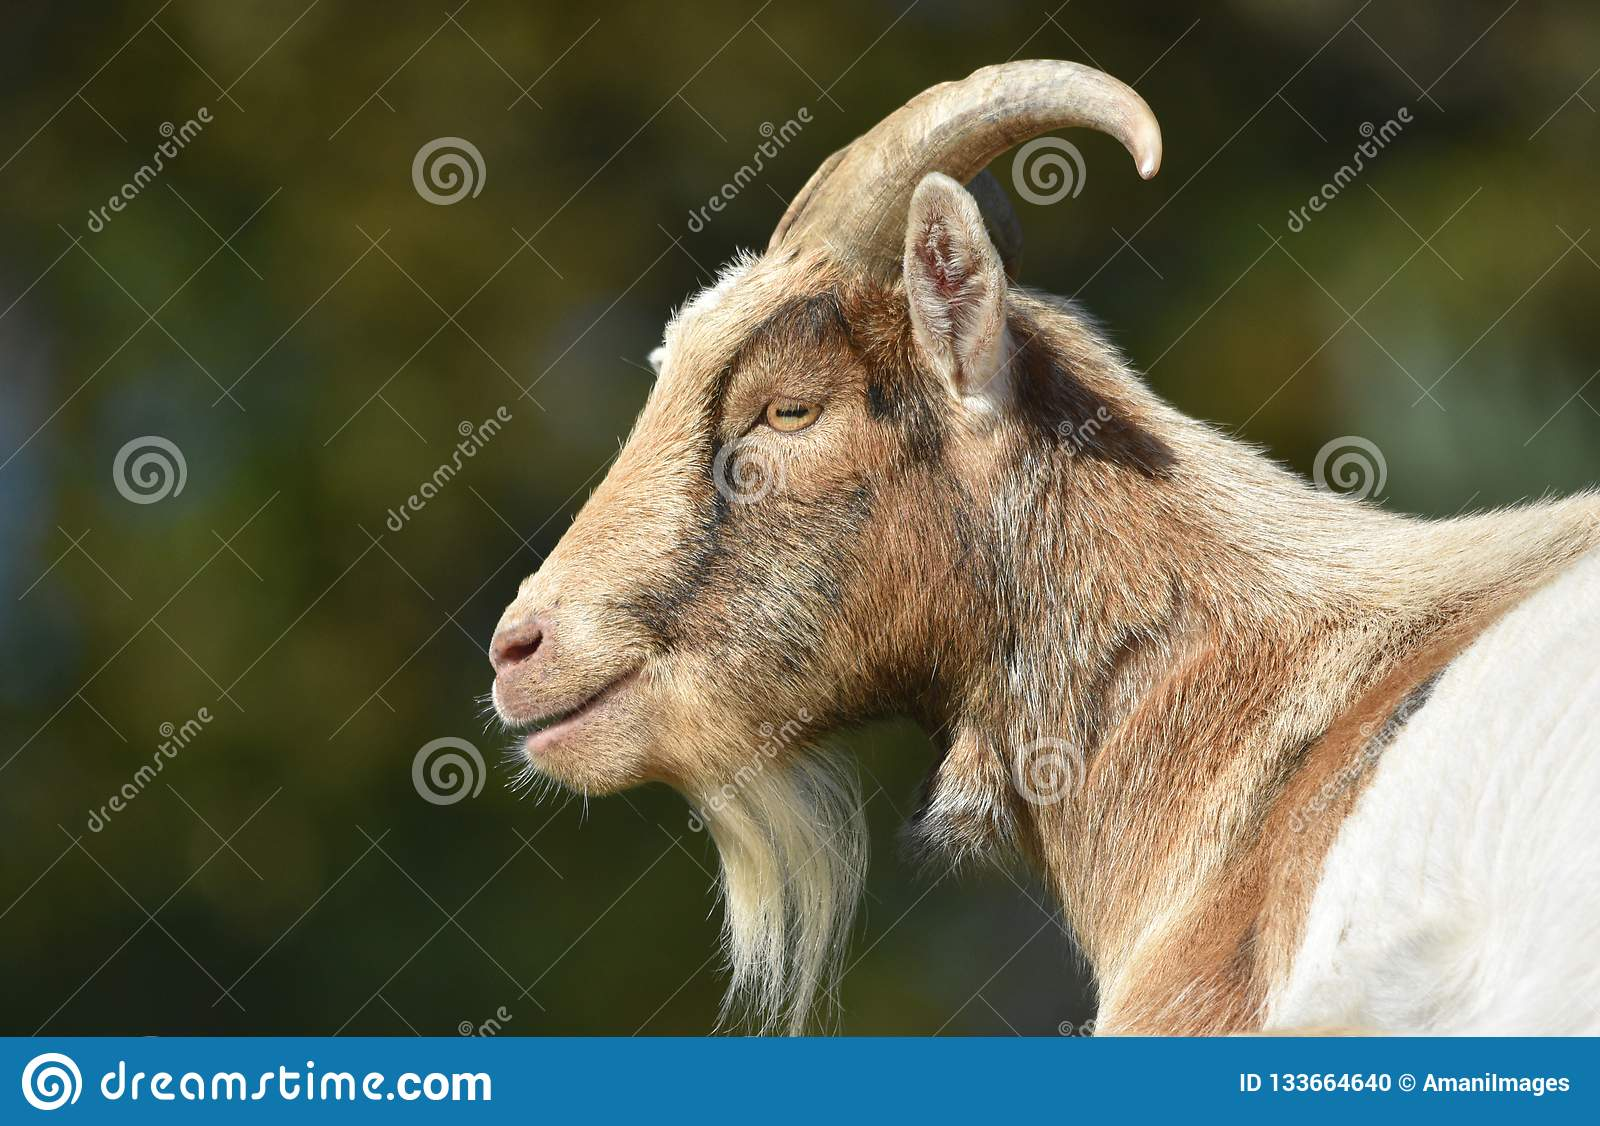 Billy goat close up of head and face